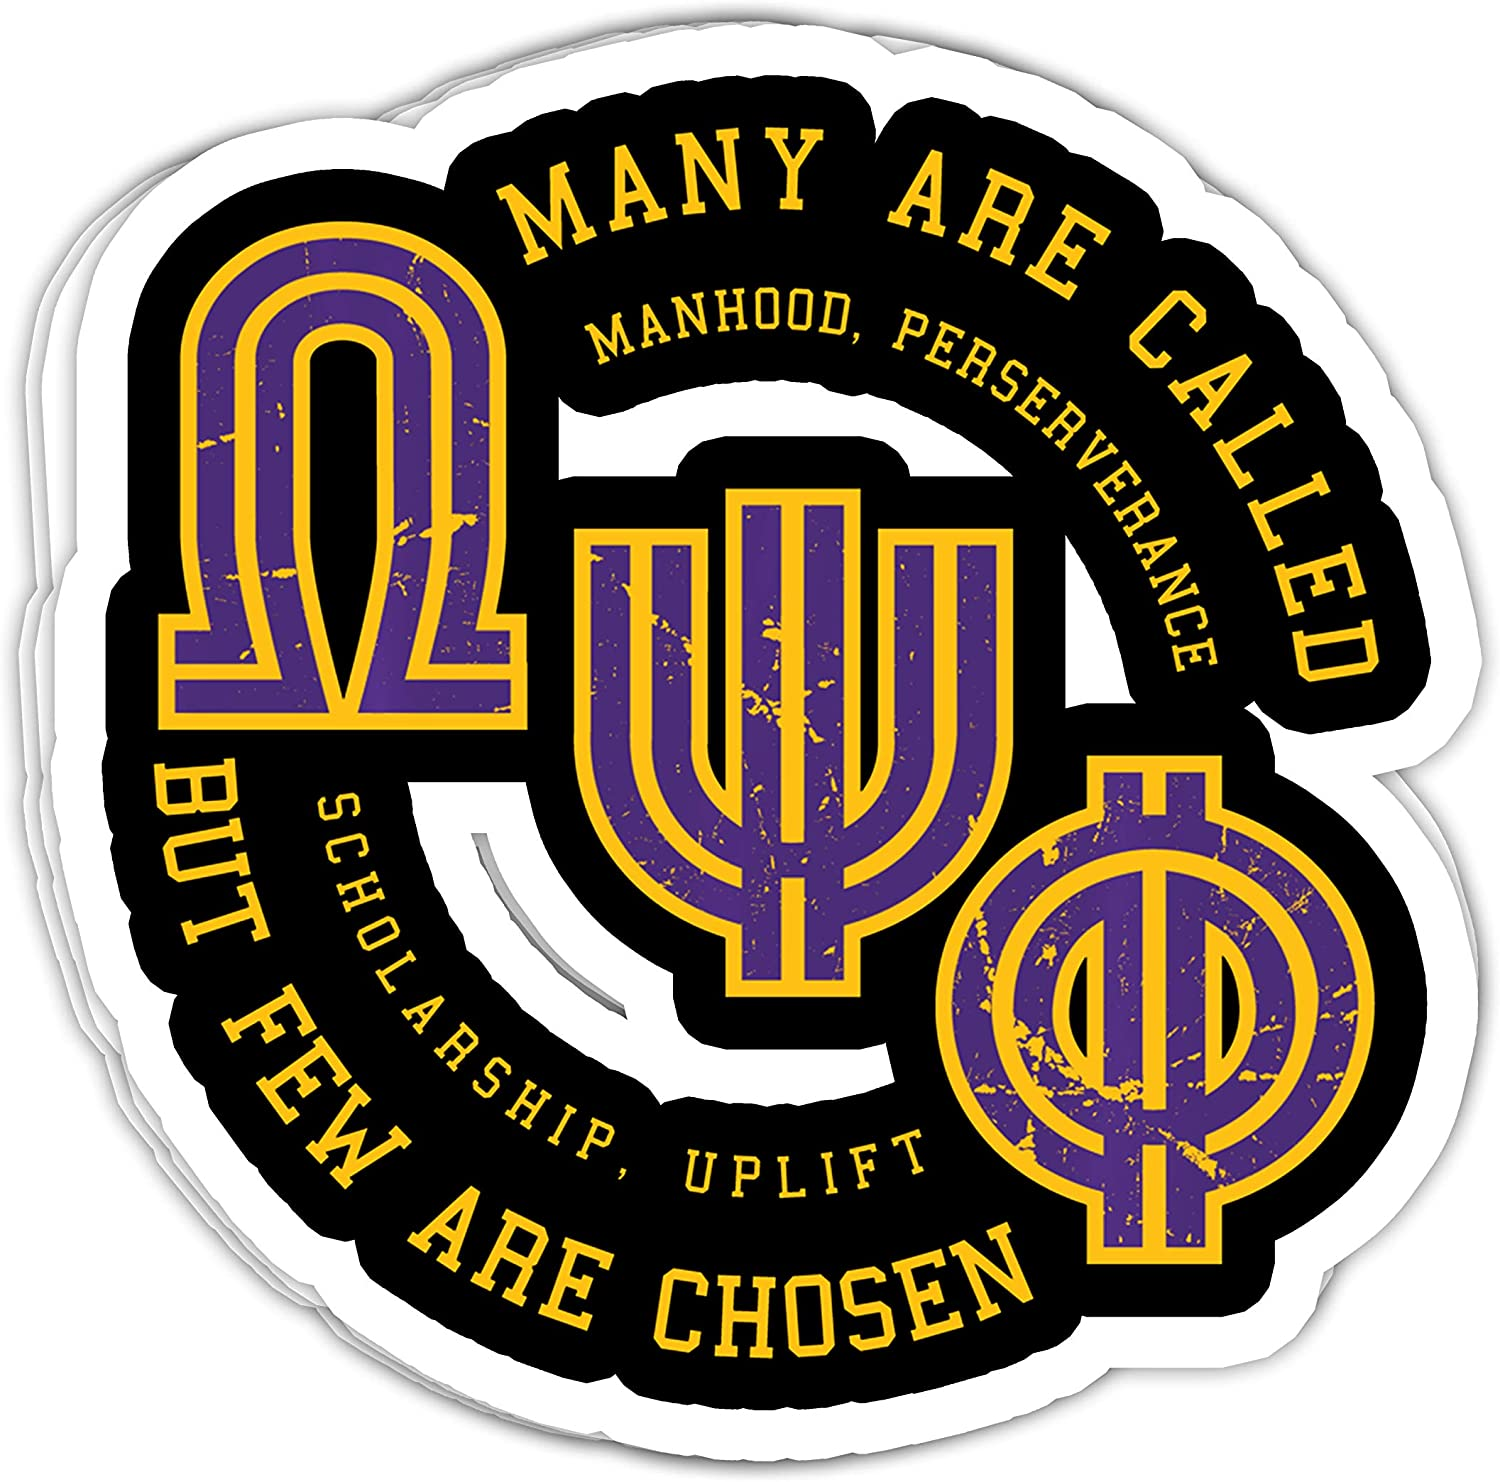 macknessfr Omega Psi Phi Fraternity, Inc. - 4x3 Vinyl Stickers, Laptop Decal, Water Bottle Sticker (Set of 3)